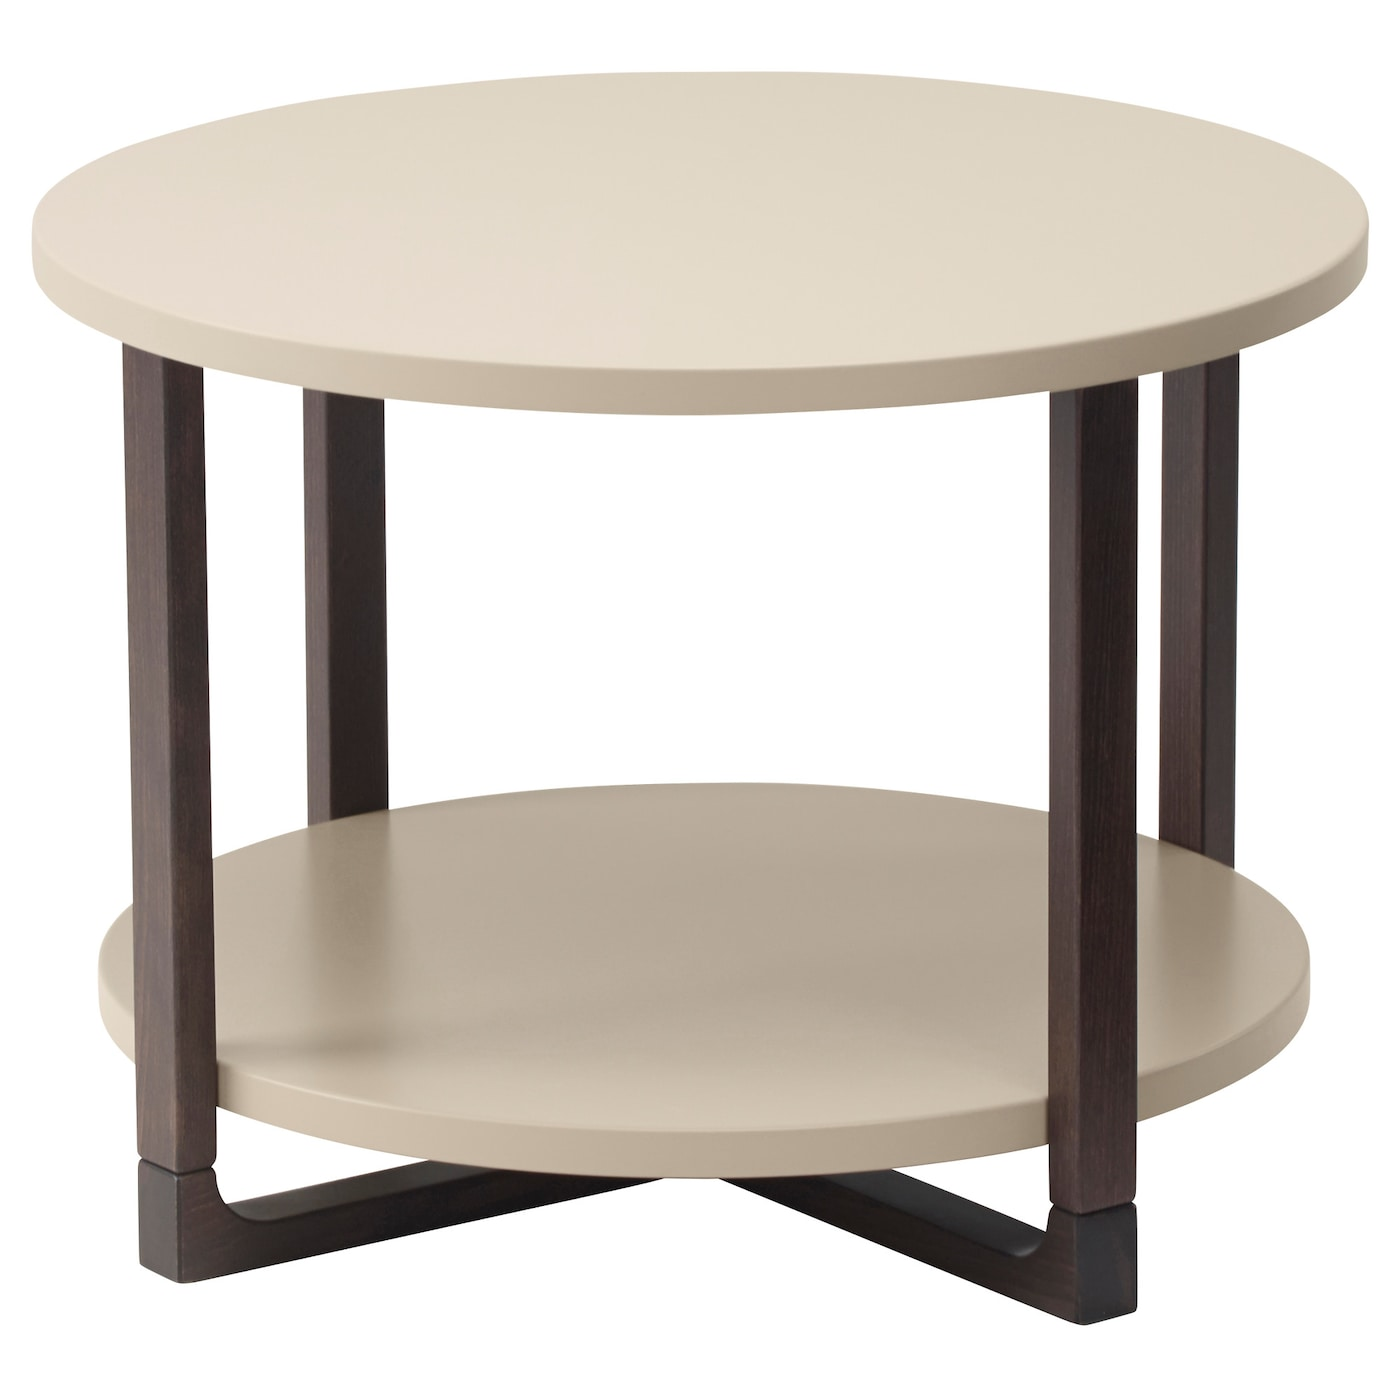 Ikea Marble Top Coffee Table: RISSNA Side Table Beige 60 Cm